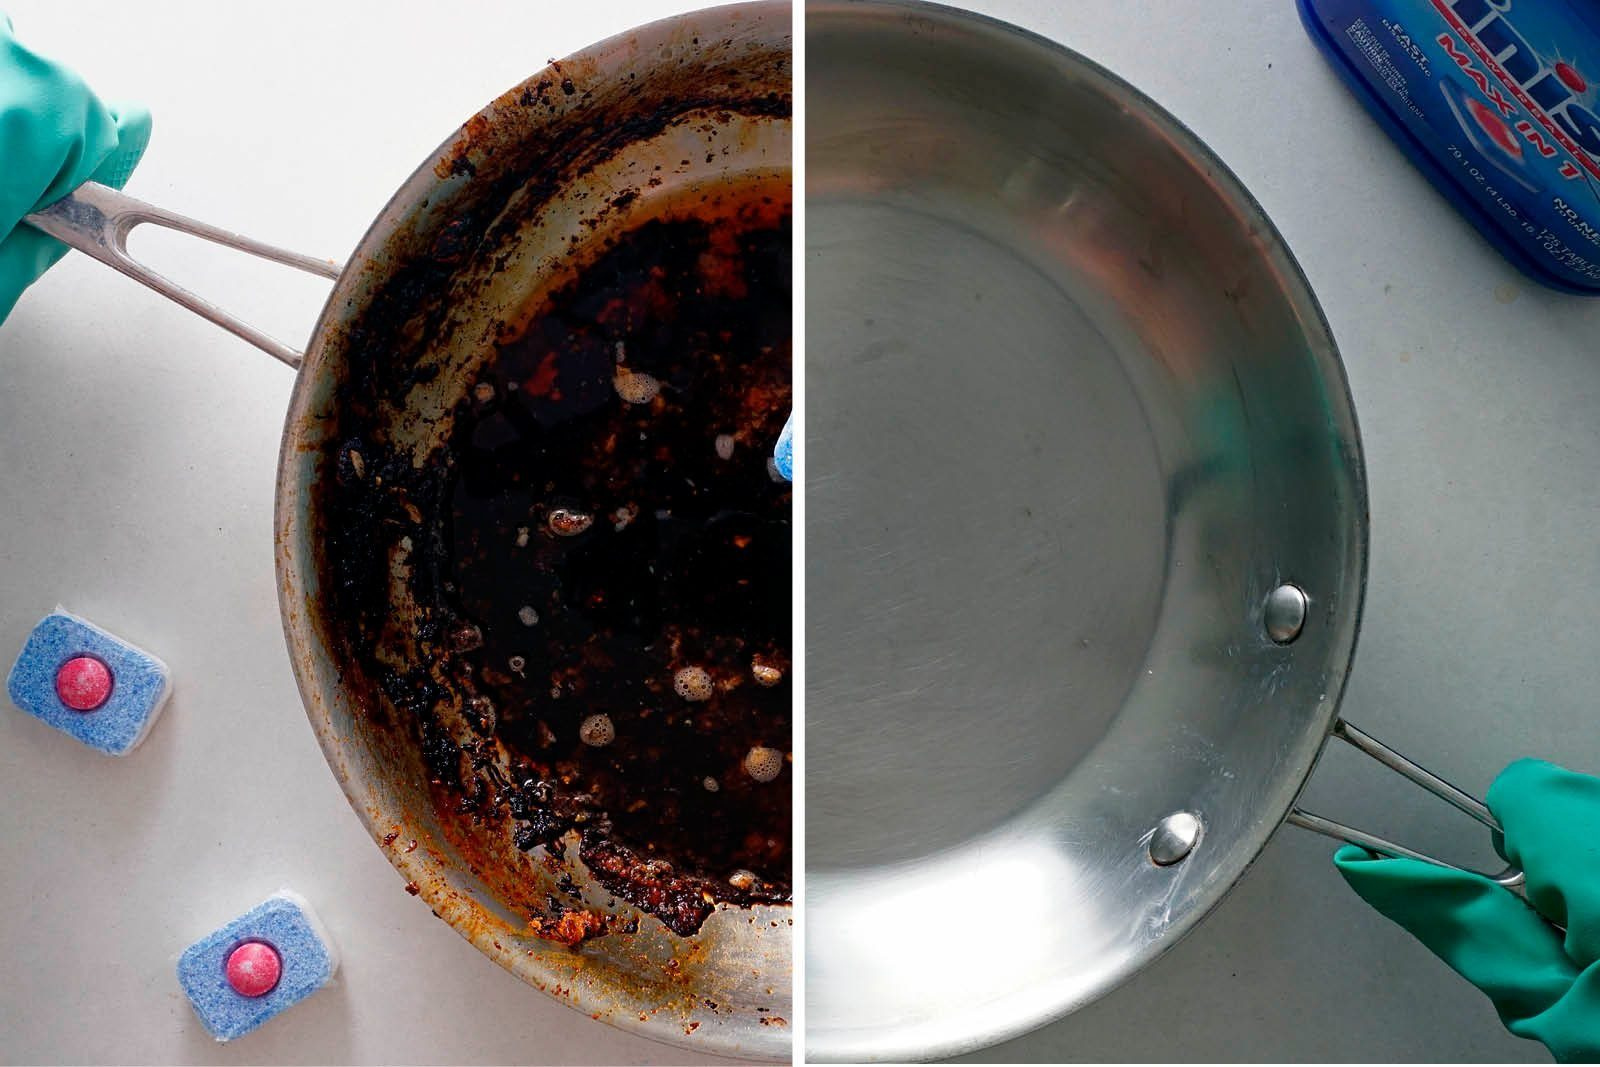 How To Clean A Skillet Dishwasher Tablet